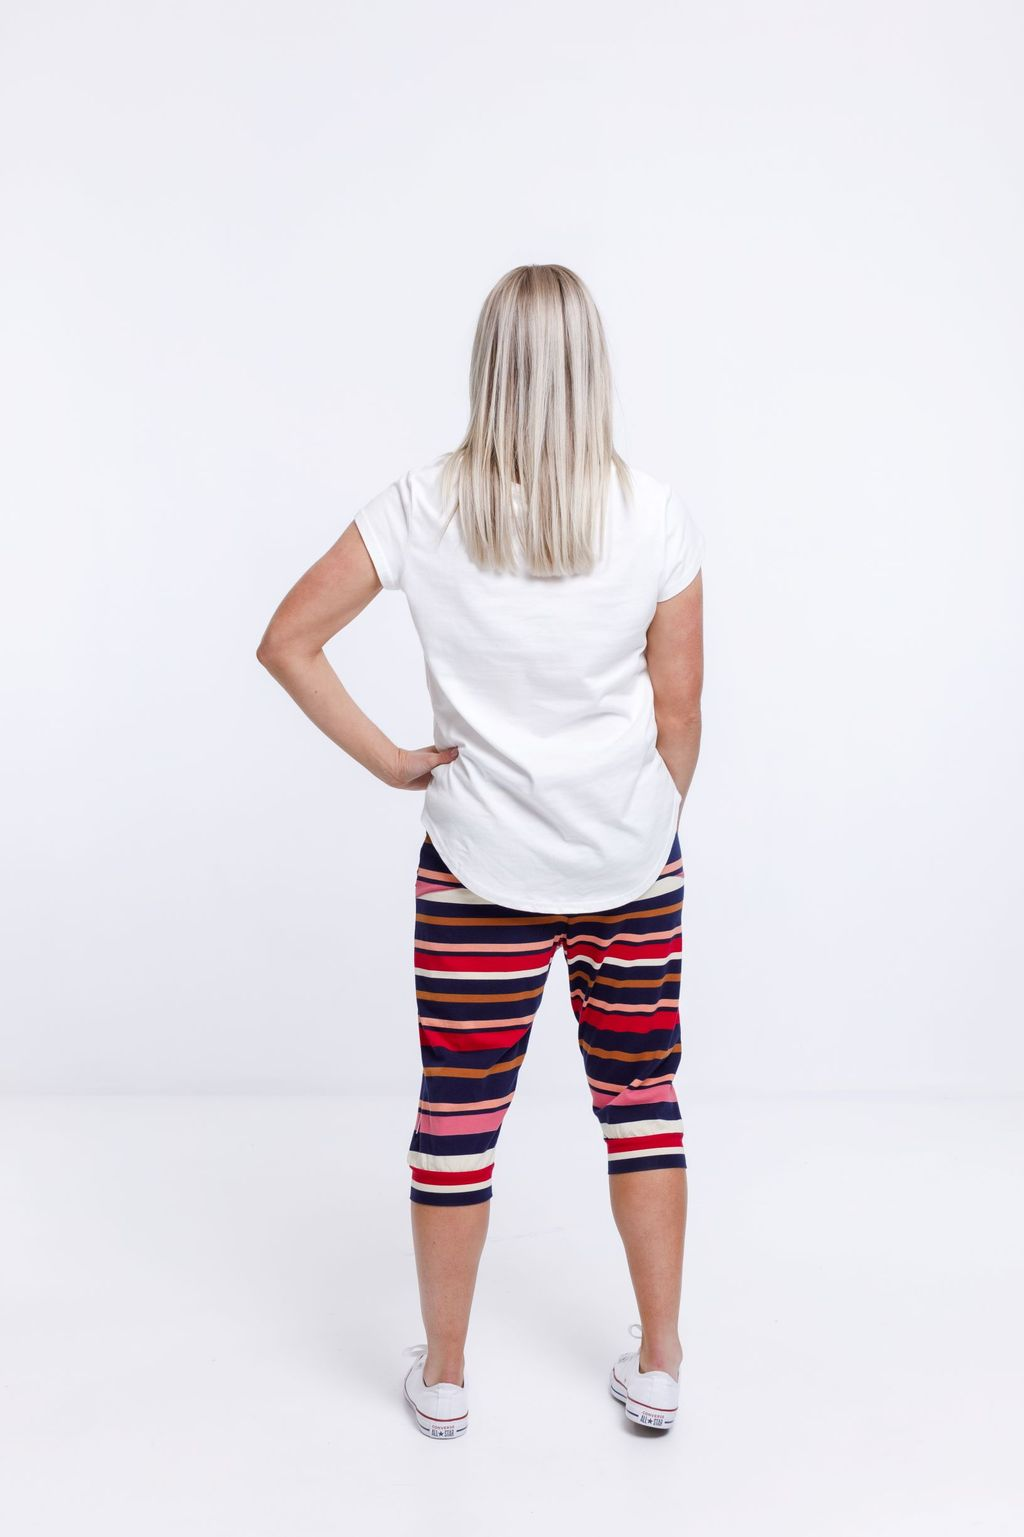 3/4 APARTMENT PANT AUTUMN STRIPE PRINT - 3/4 APARTMENT PANT AUTUMN STRIPE PRINT - Ebony Boutique NZ